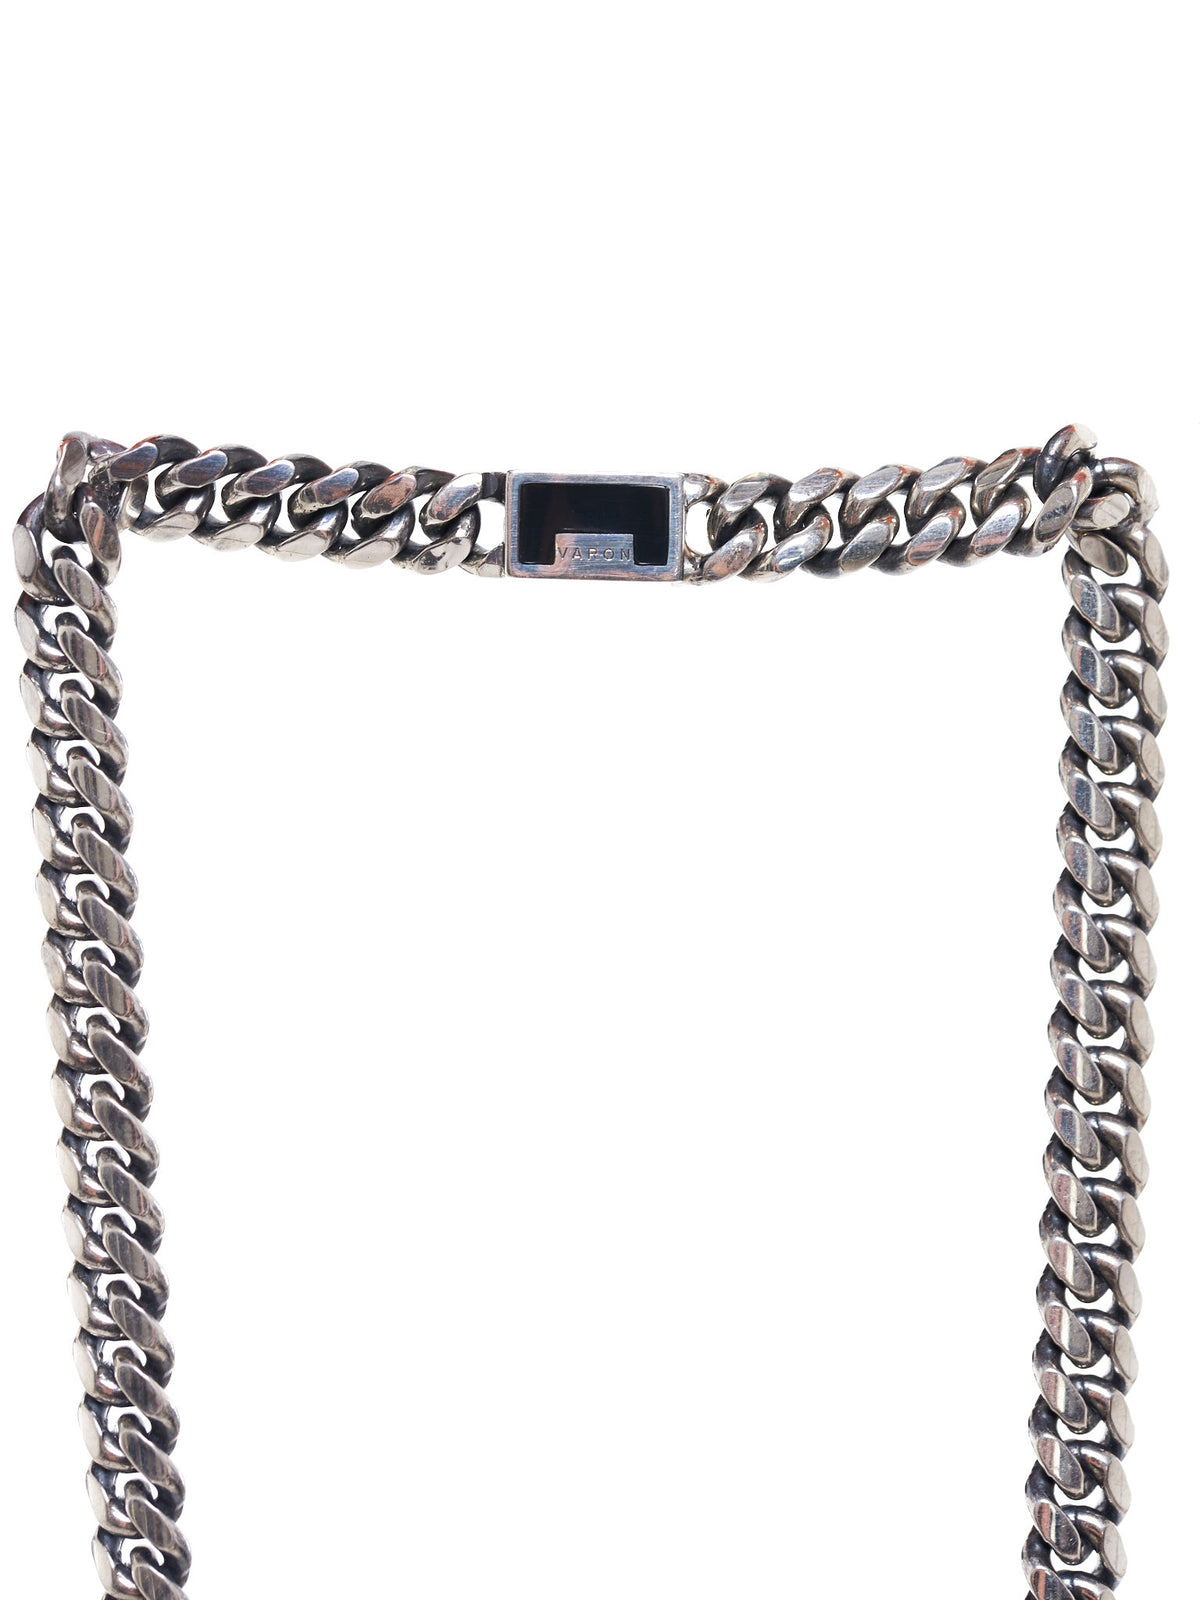 Chain-Link Necklace (HAIVE-MALO-SILVER-BLACK-BONE)